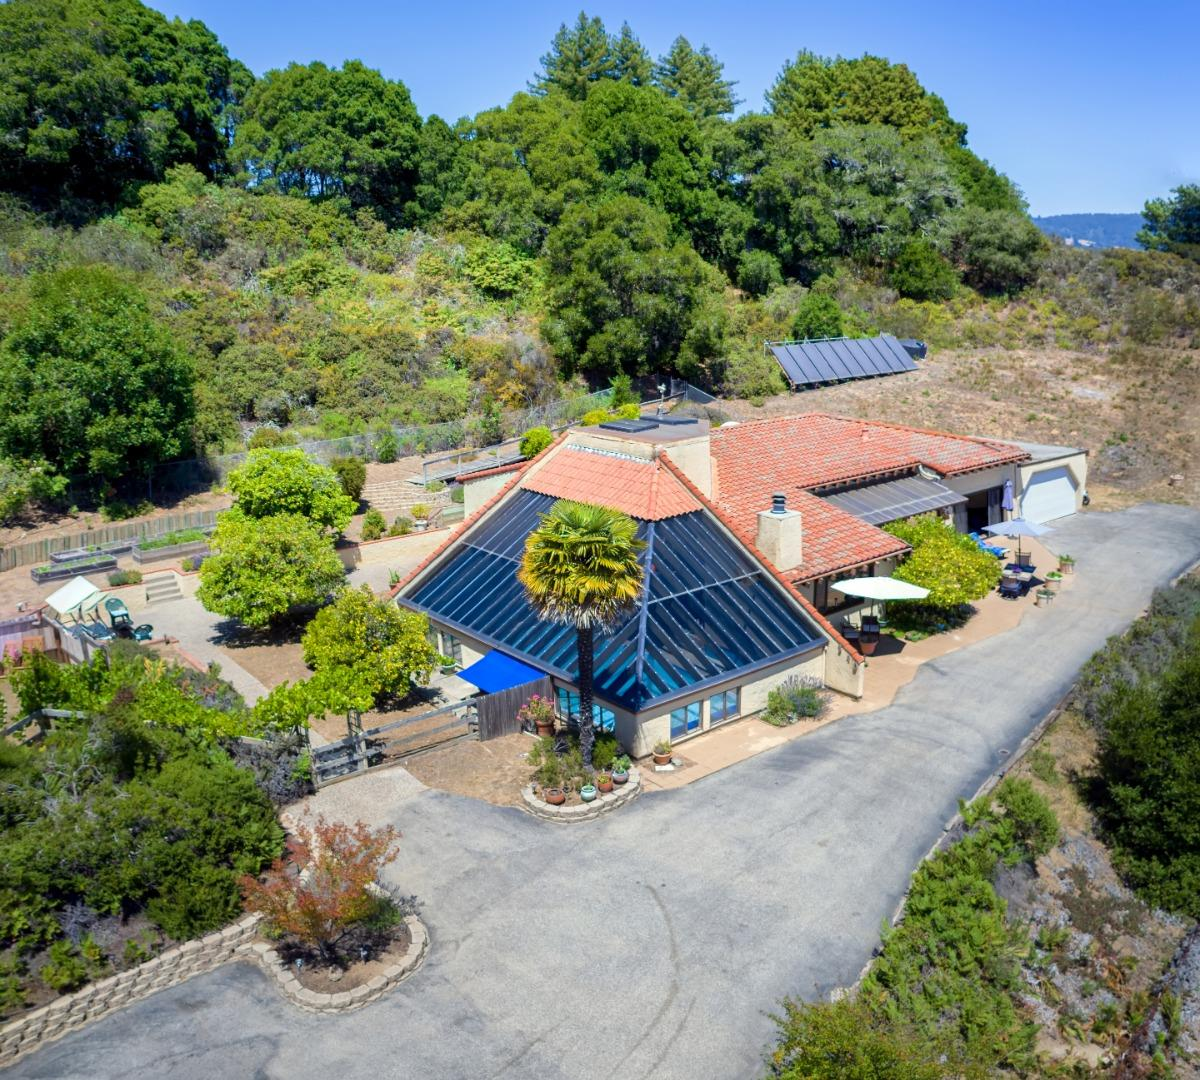 With spectacular sweeping views of the Monterey Bay & Pajaro Valley, this 4 BR single level home is nestled on 5 usable acres. Amenities of this well built home include a custom hand carved entry door, built-in cabinetry, vaulted beam ceilings, a rock fireplace & an indoor pool to enjoy year round swimming! Separately metered two story 1200 s.f. barn (perfect home office, studio, or possible ADU), large fenced back yard, terraced landscape with multiple areas to enjoy the expansive views, a detached sauna, & plenty of room to garden with great southern exposure. PG&E gas service, city water, nest thermostats & high speed internet. Many fruit trees on site, including avocado and citrus. This serene retreat is located at the end of a private drive, yet only minutes to beaches, shopping, dining & Hwy 1. You're sure to appreciate the microclimate & Corralitos community, with its famed market & wine trail. Gazing out over the ever changing views, you simply cannot help but relax & unwind.